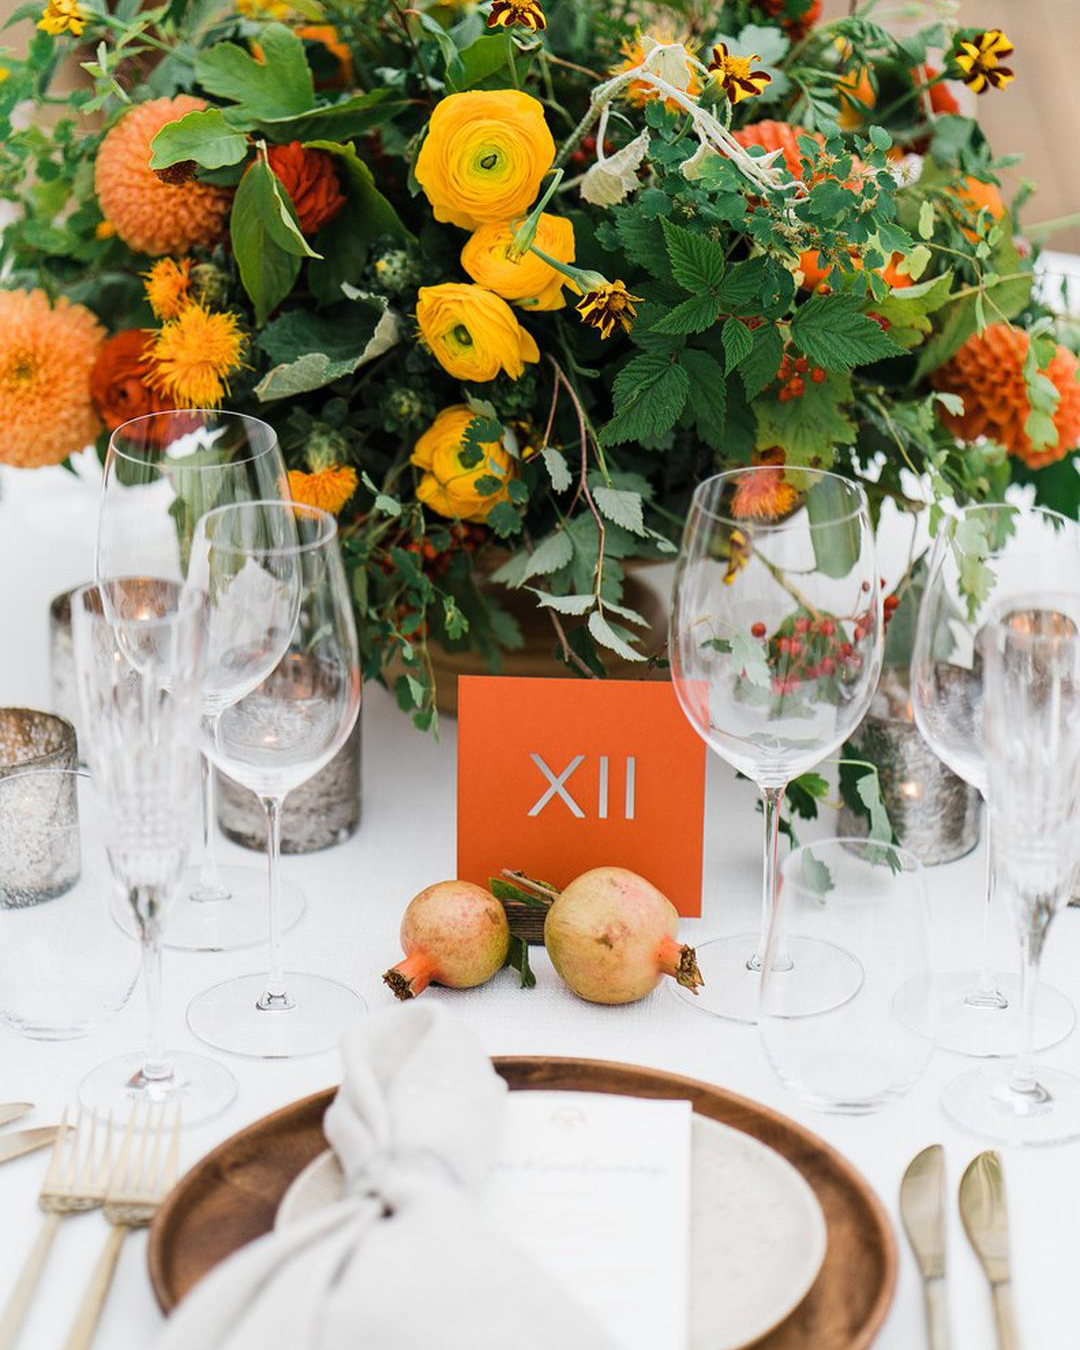 Flowers and wine glasses